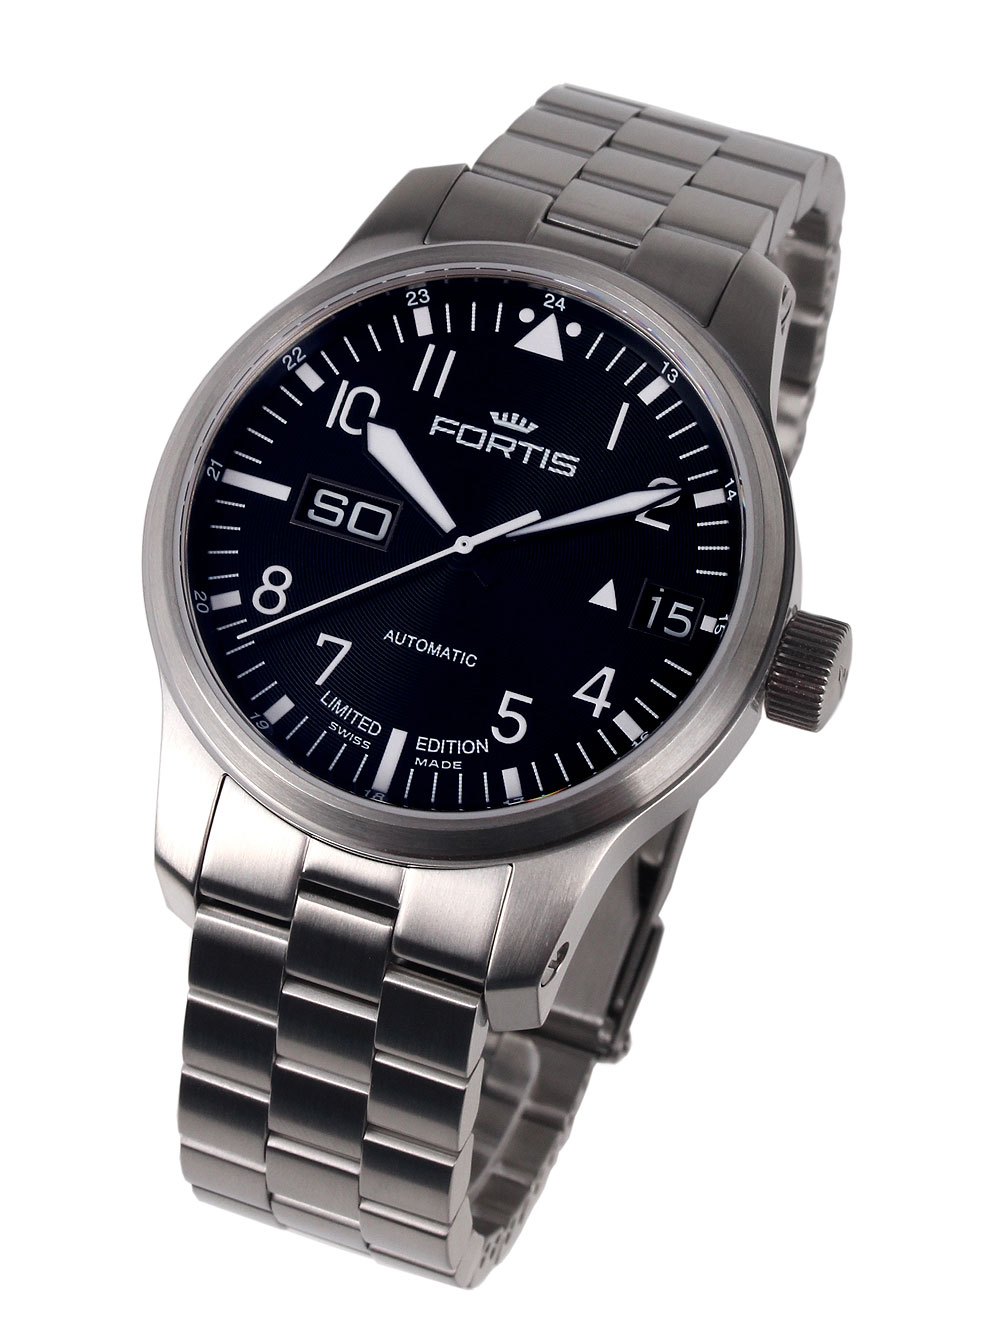 Image of Fortis 700.10.81 M F-43 Flieger Big Day-Date 43 mm 20ATM